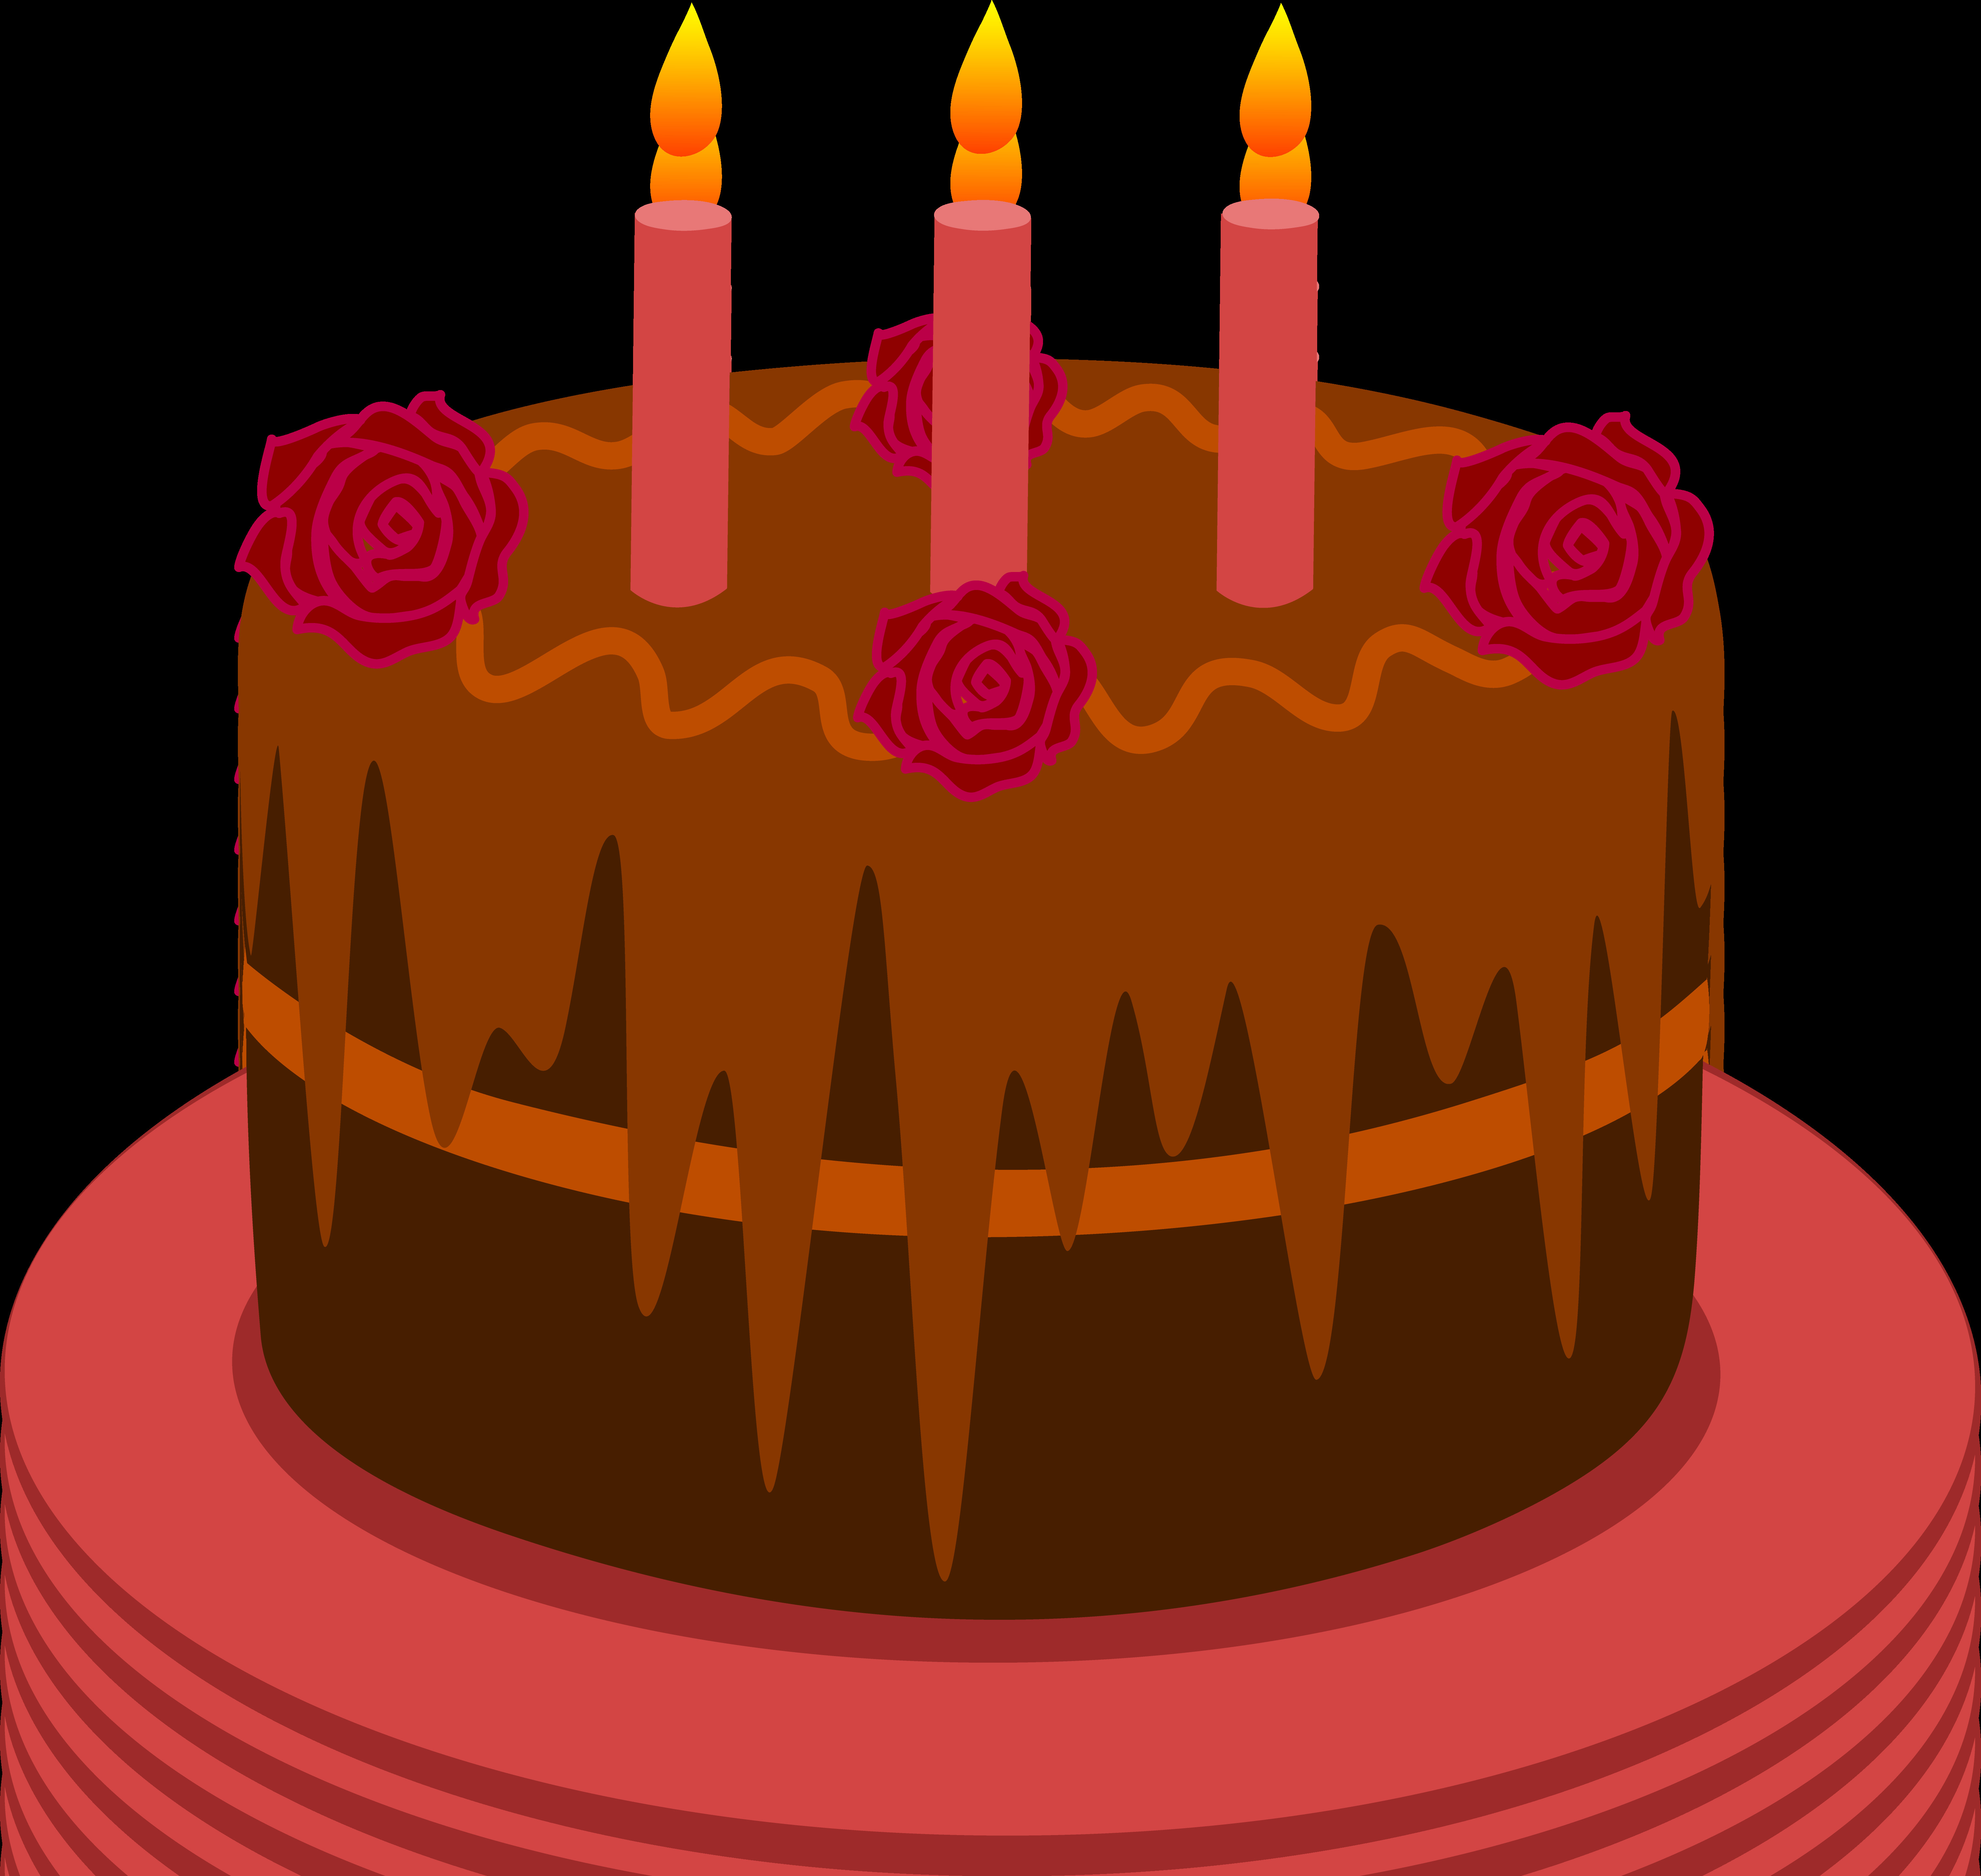 Best ideas about Cartoon Birthday Cake . Save or Pin Cake clipart 2 candle Pencil and in color cake clipart 2 Now.